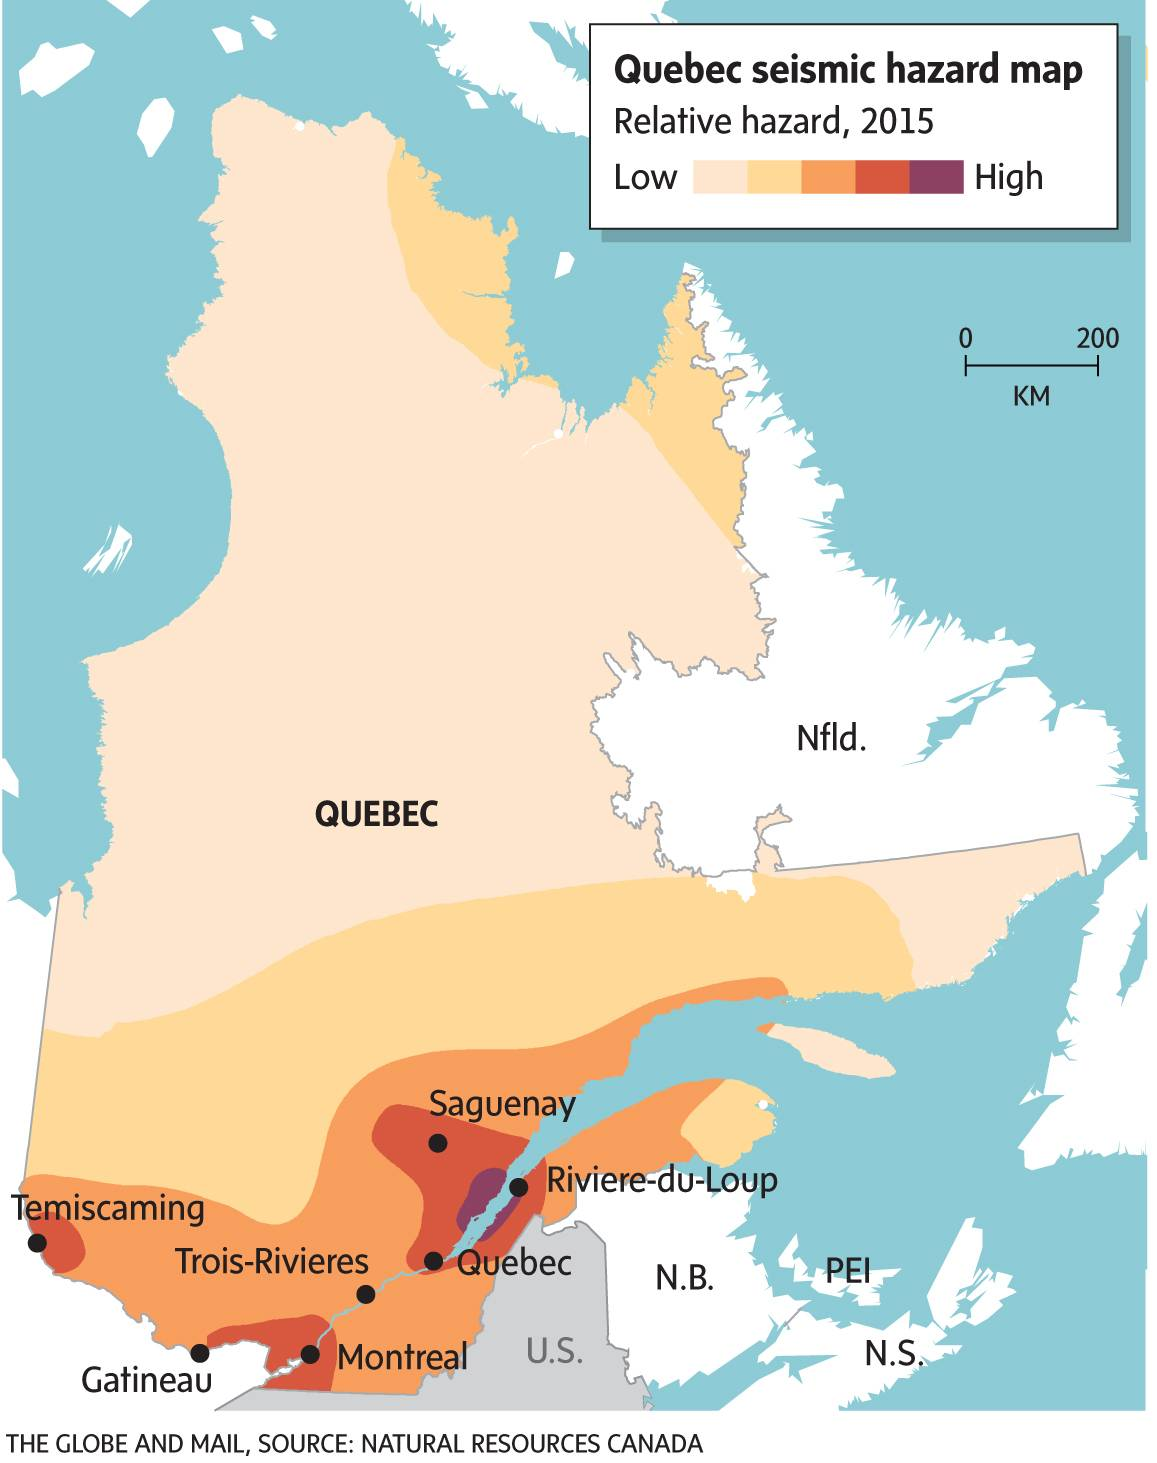 Quebec seismic hazard map - The Globe and Mail on seismic activity map, costa rica time zones map, seismic analysis, seismic map colors, clay map, national seismic map, paleogeographic map, mitigation of seismic motion, seismic risk map, plate tectonics map, seismic loading, seismograph map, ibc seismic map, contour lines on a map, seismic risk,